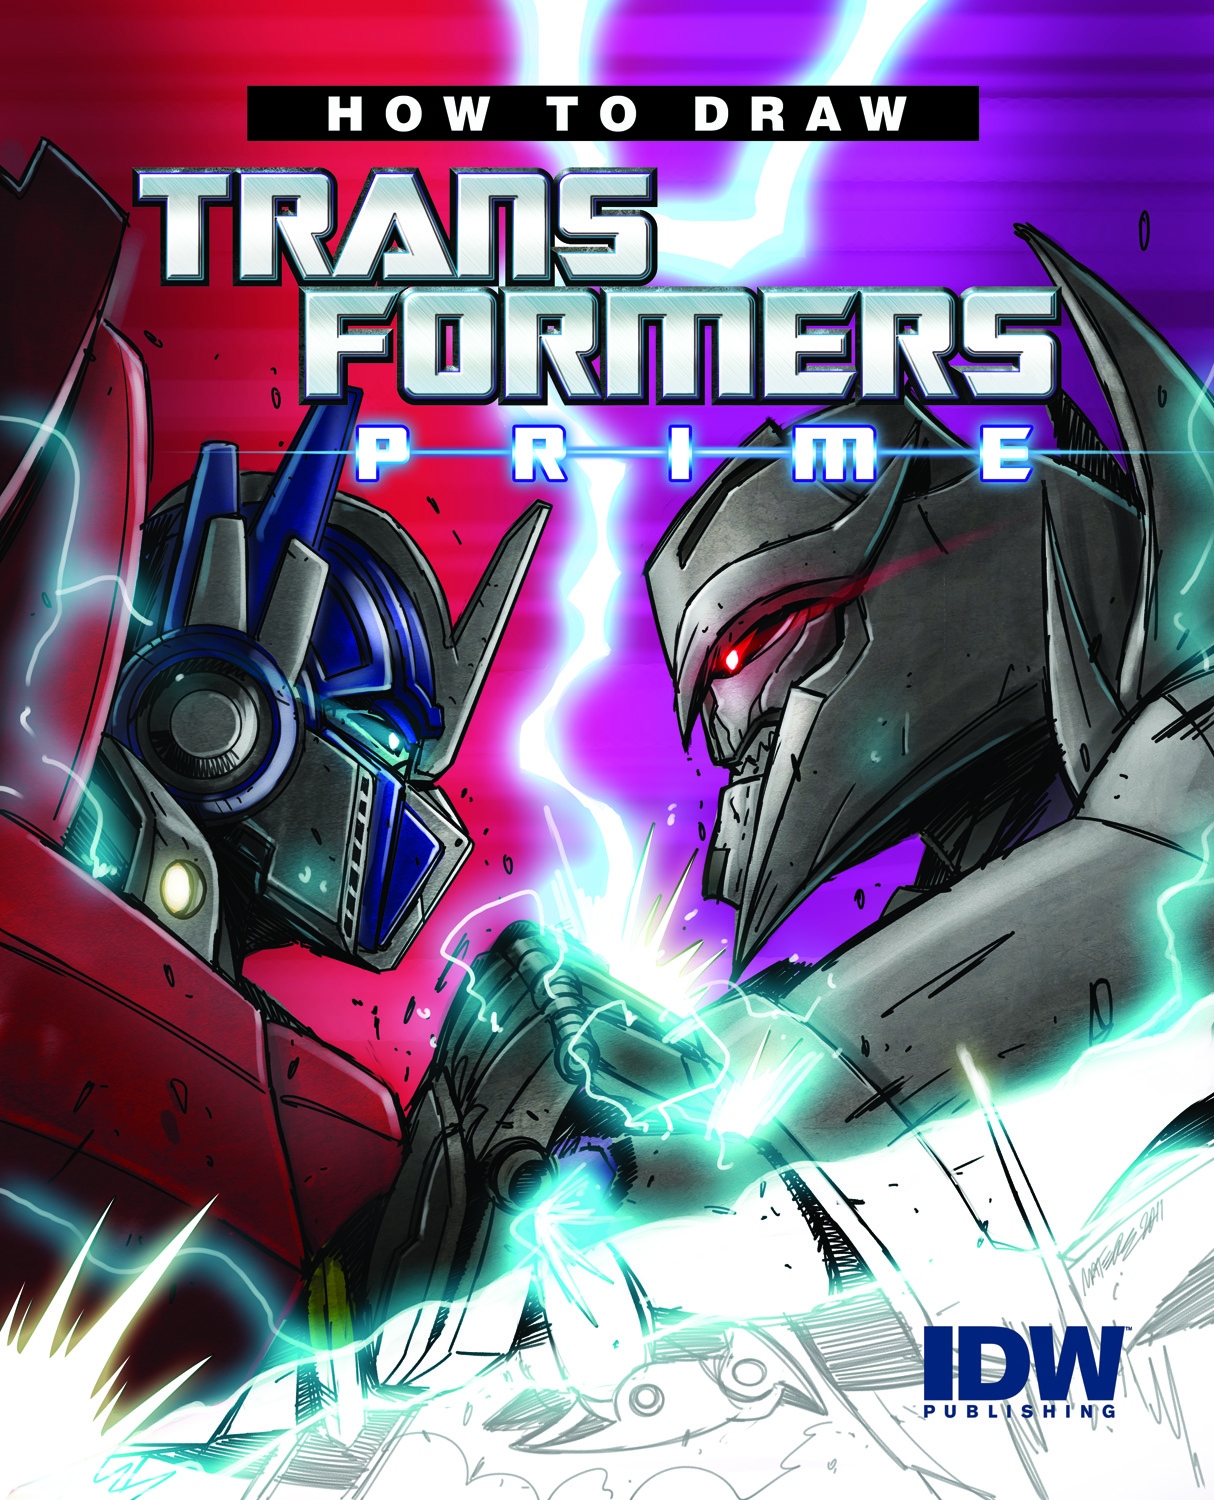 How to Draw Transformers cover